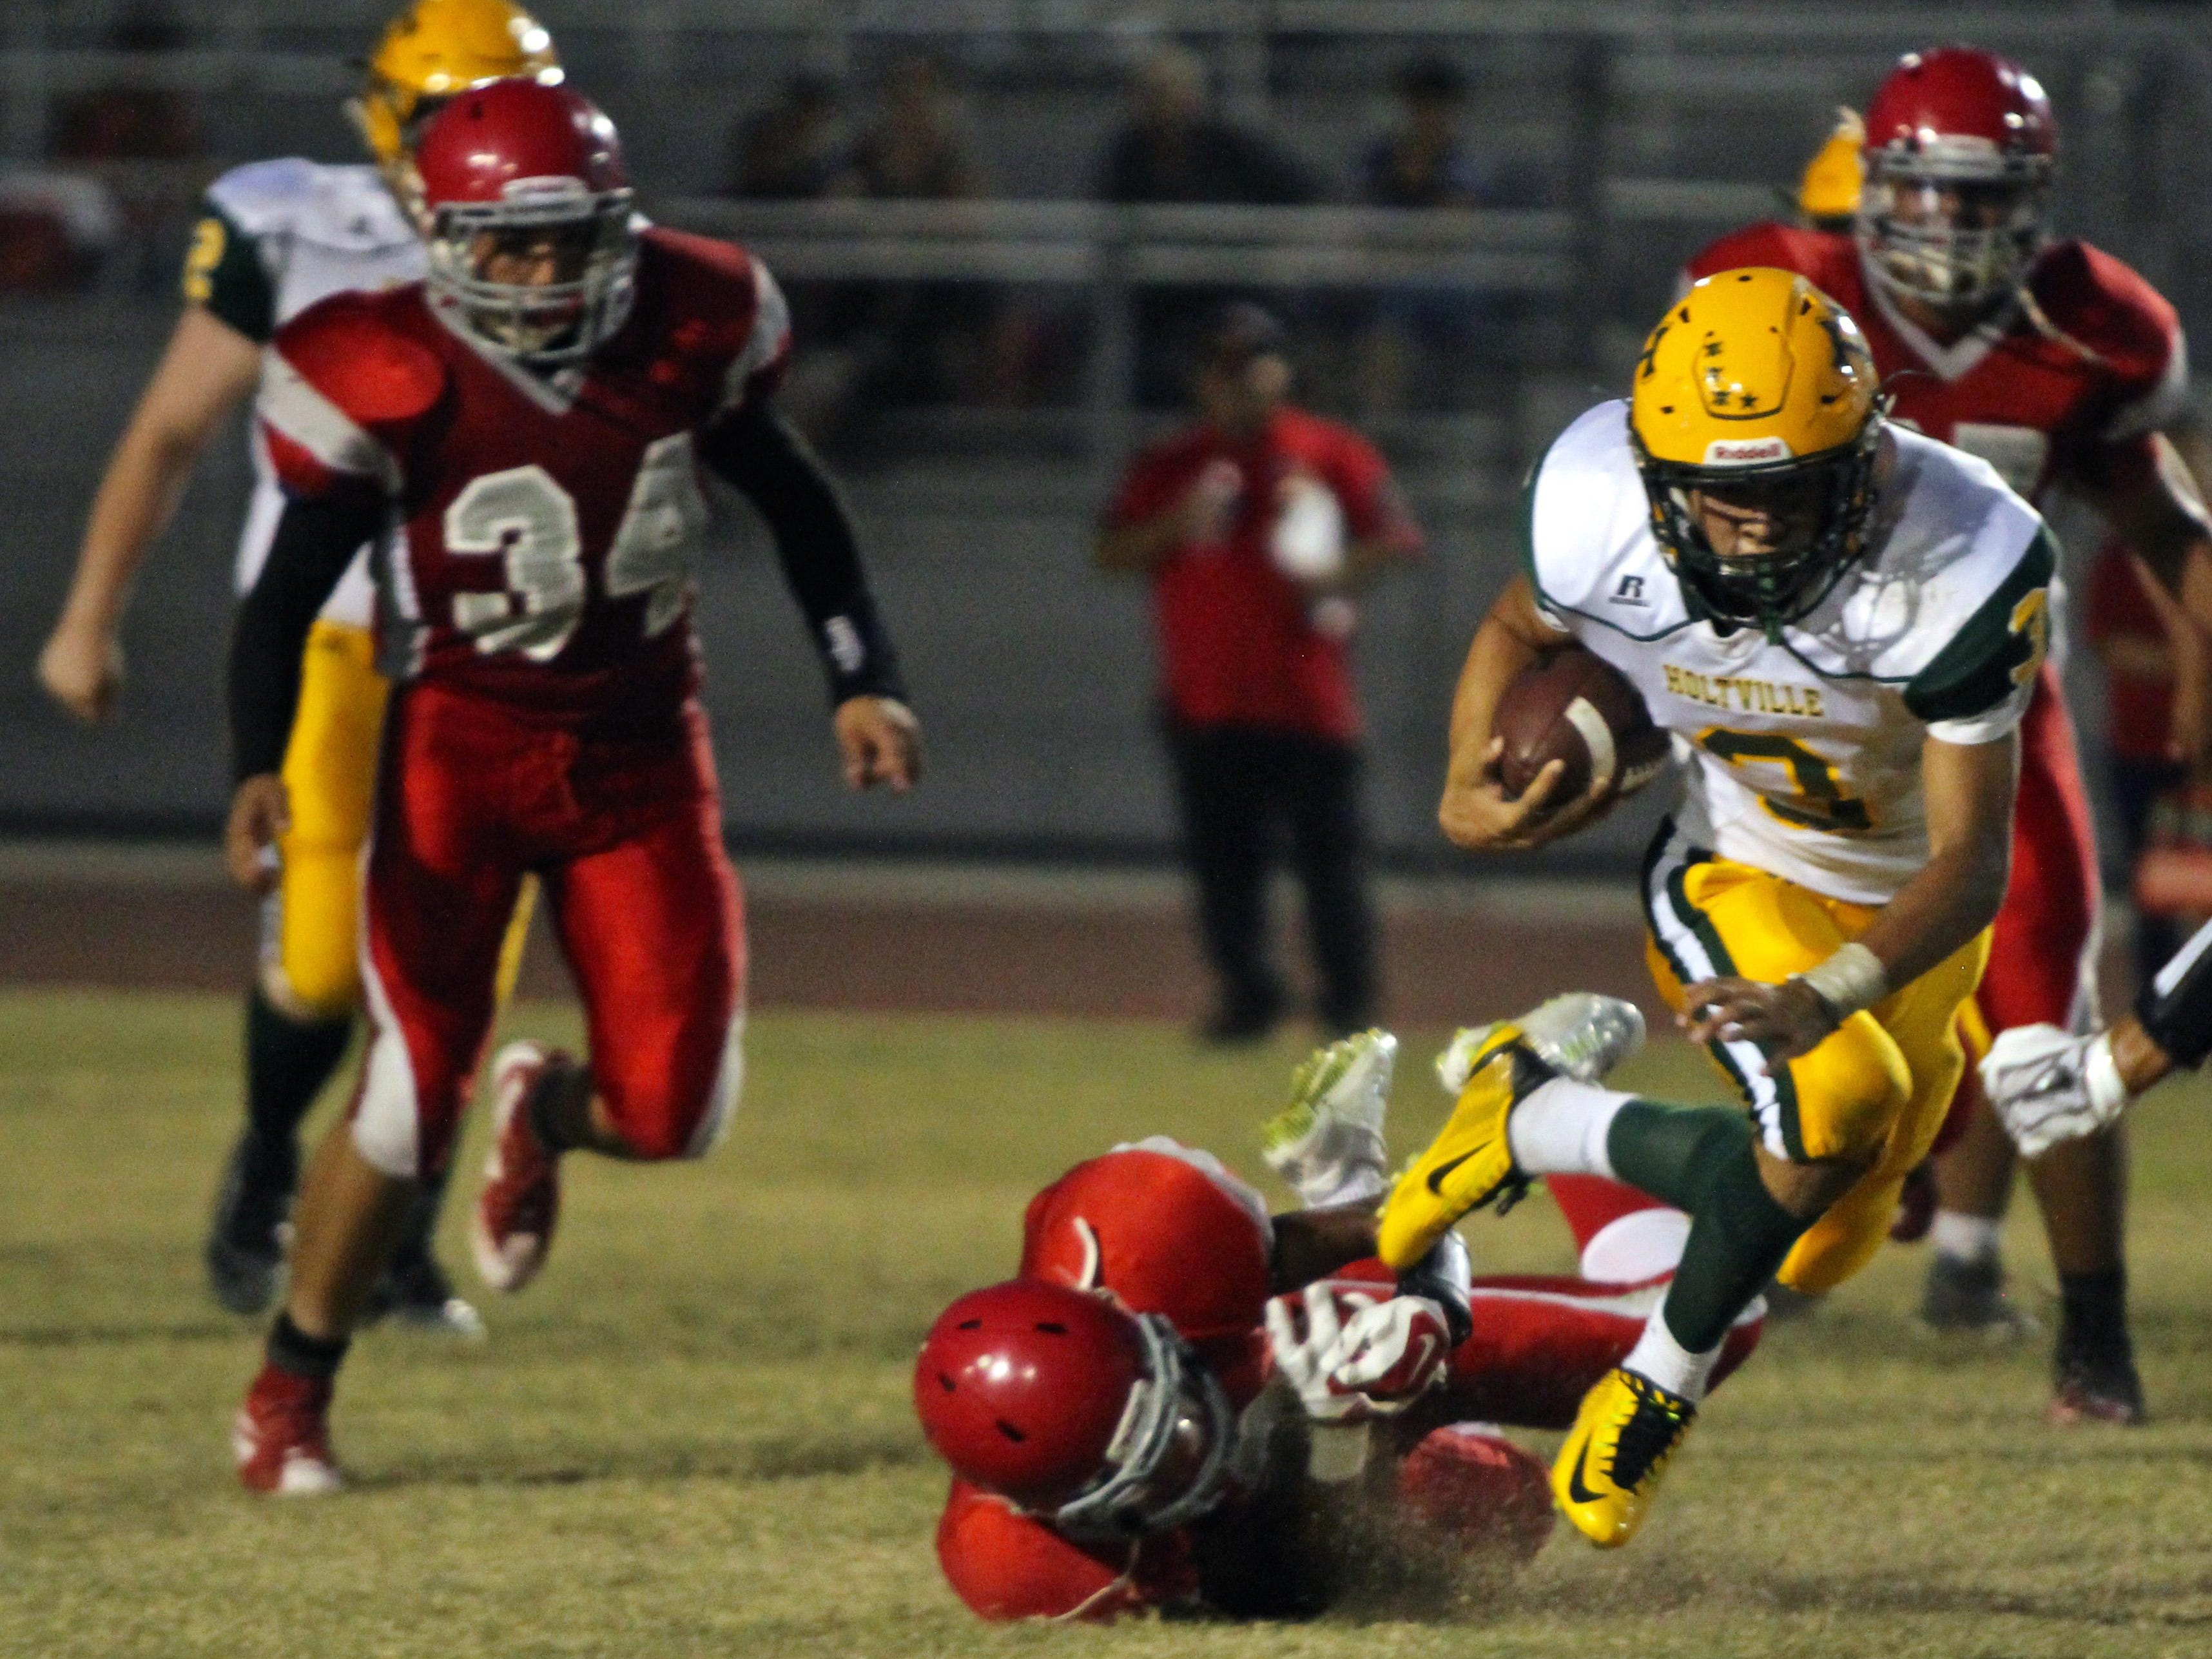 Holtville's Brice Bolin (3) attempts to elude a Desert Mirage defender during Friday night's game. Desert Mirage won 26-21.